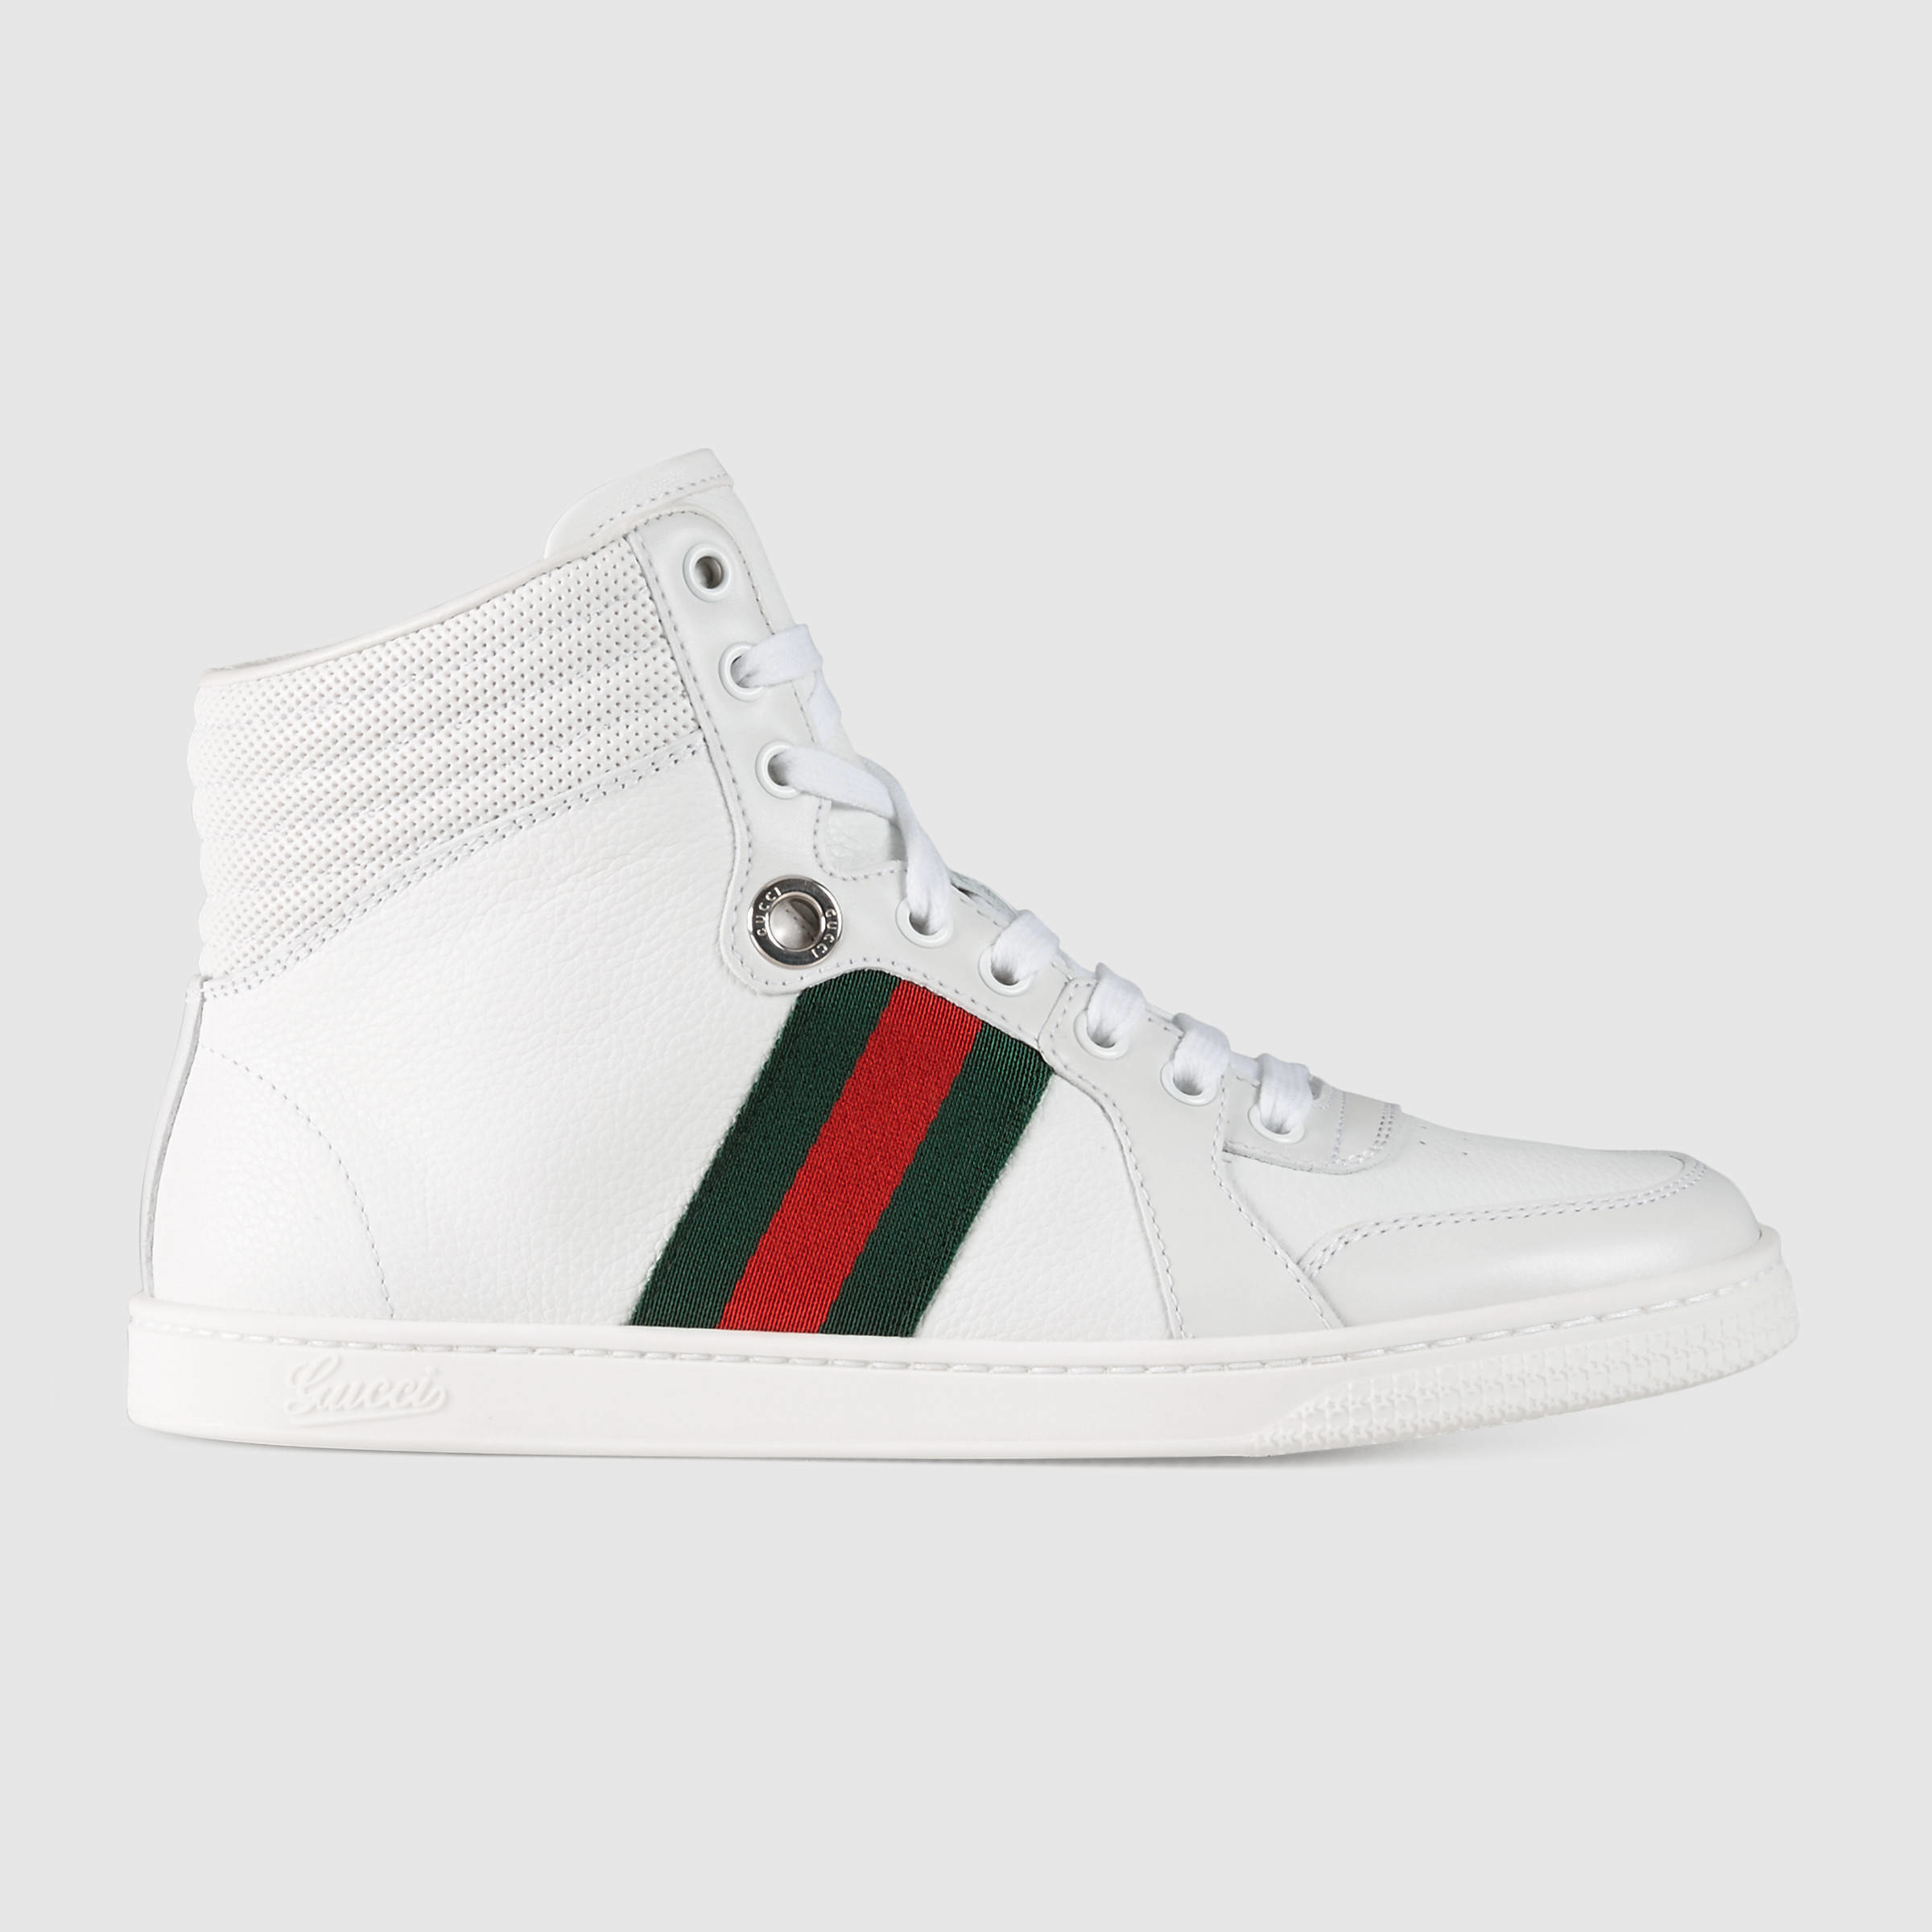 gucci leather high top sneaker in green white leather lyst. Black Bedroom Furniture Sets. Home Design Ideas